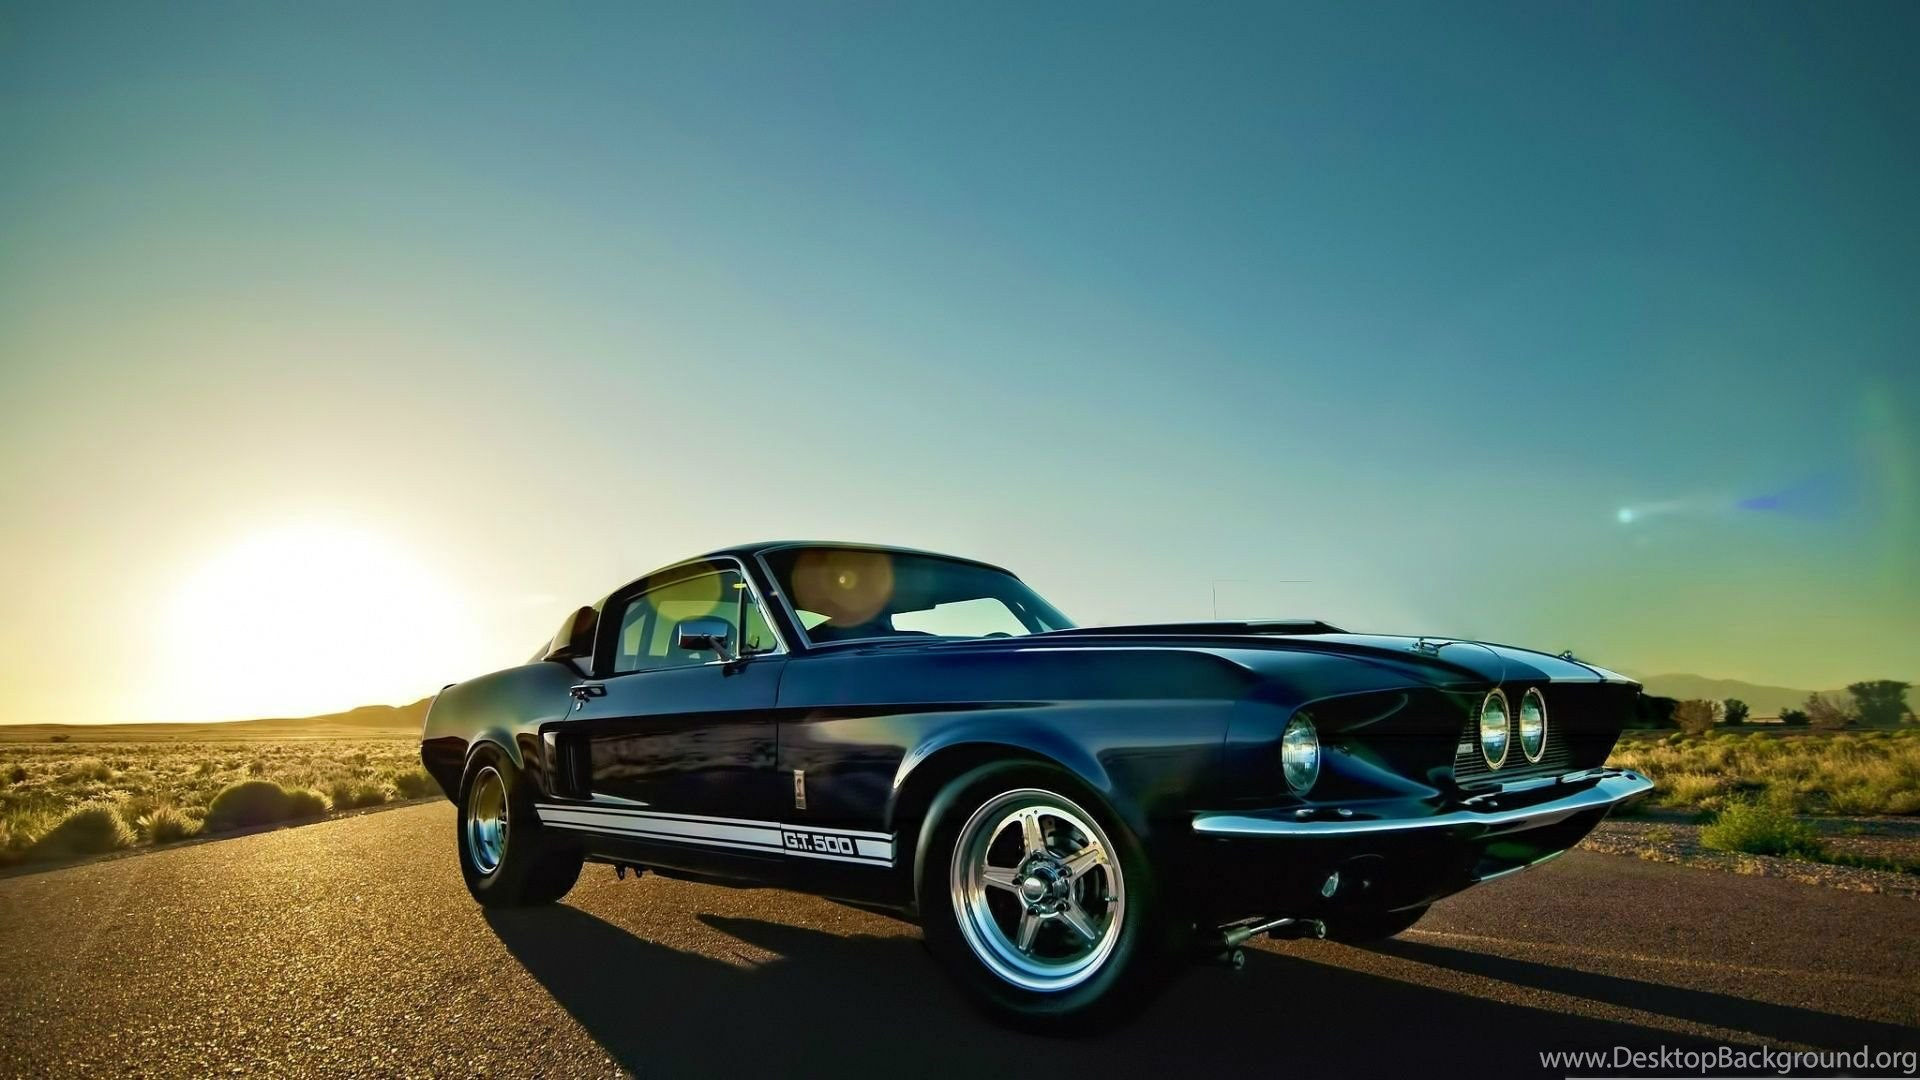 23457) Muscle Car 1920 HD Desktop Backgrounds Wallpapers WalOps.com ...